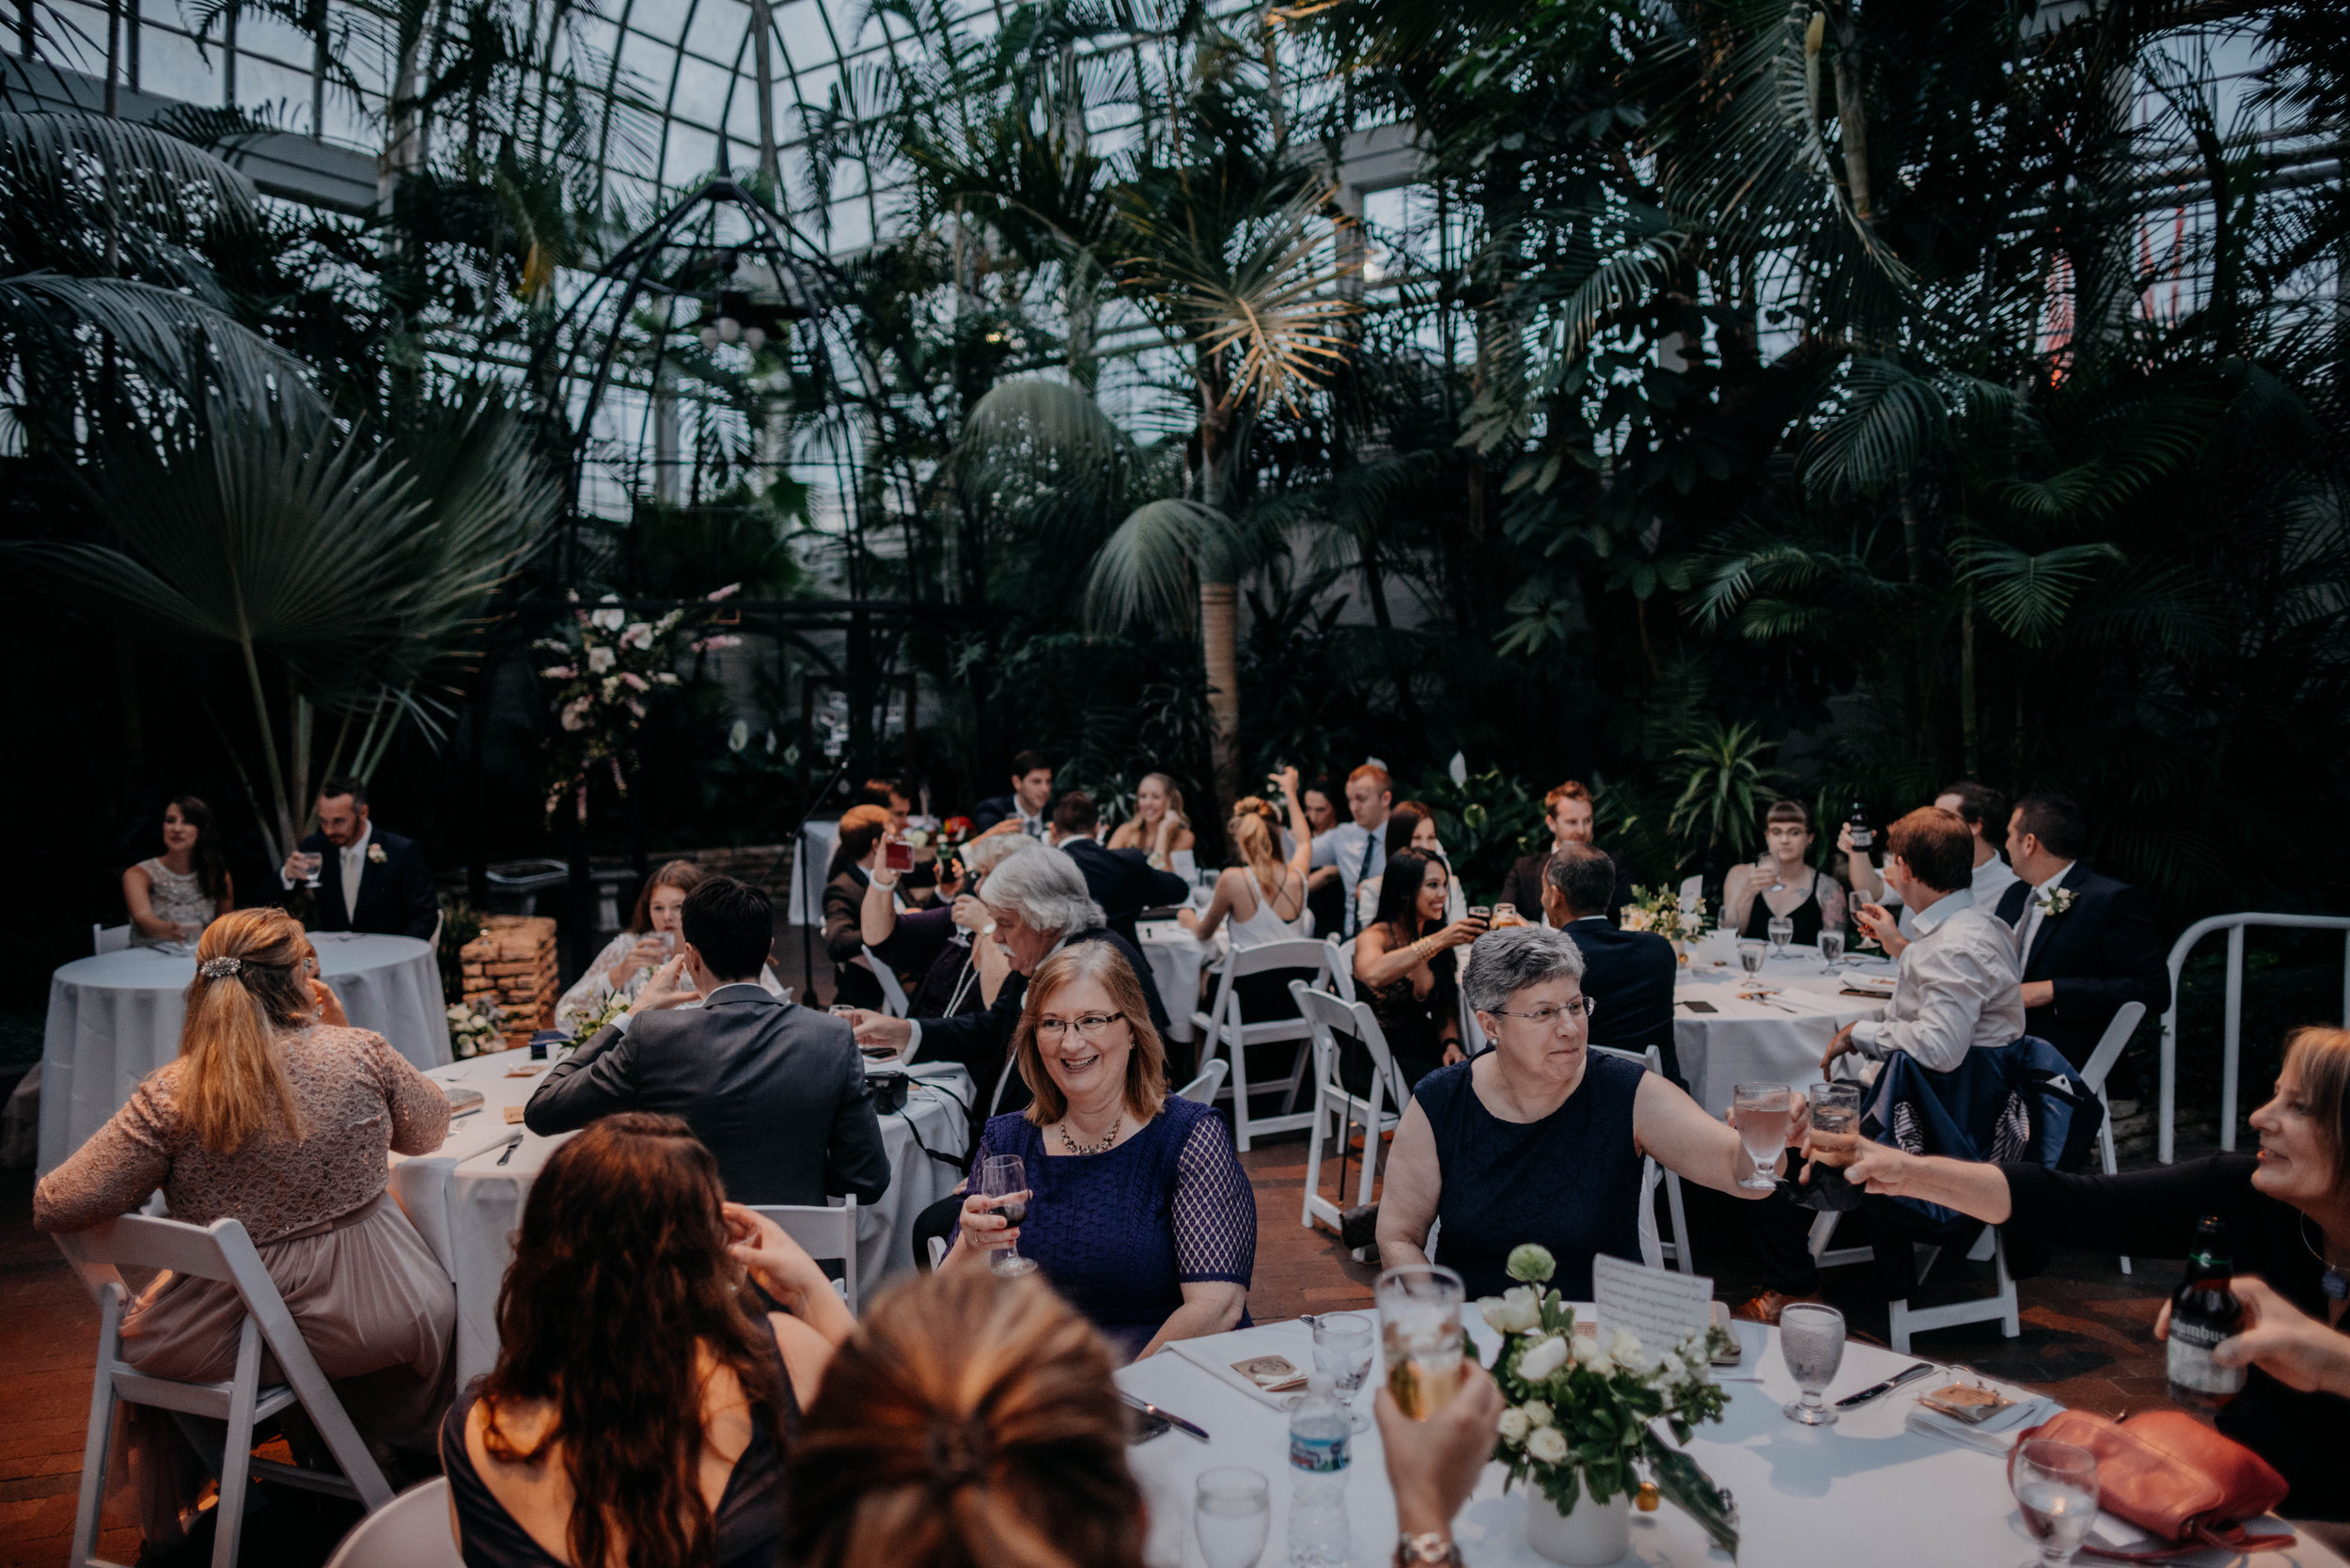 franklin park conservatory wedding columbus ohio wedding photographer grace e jones photography282.jpg